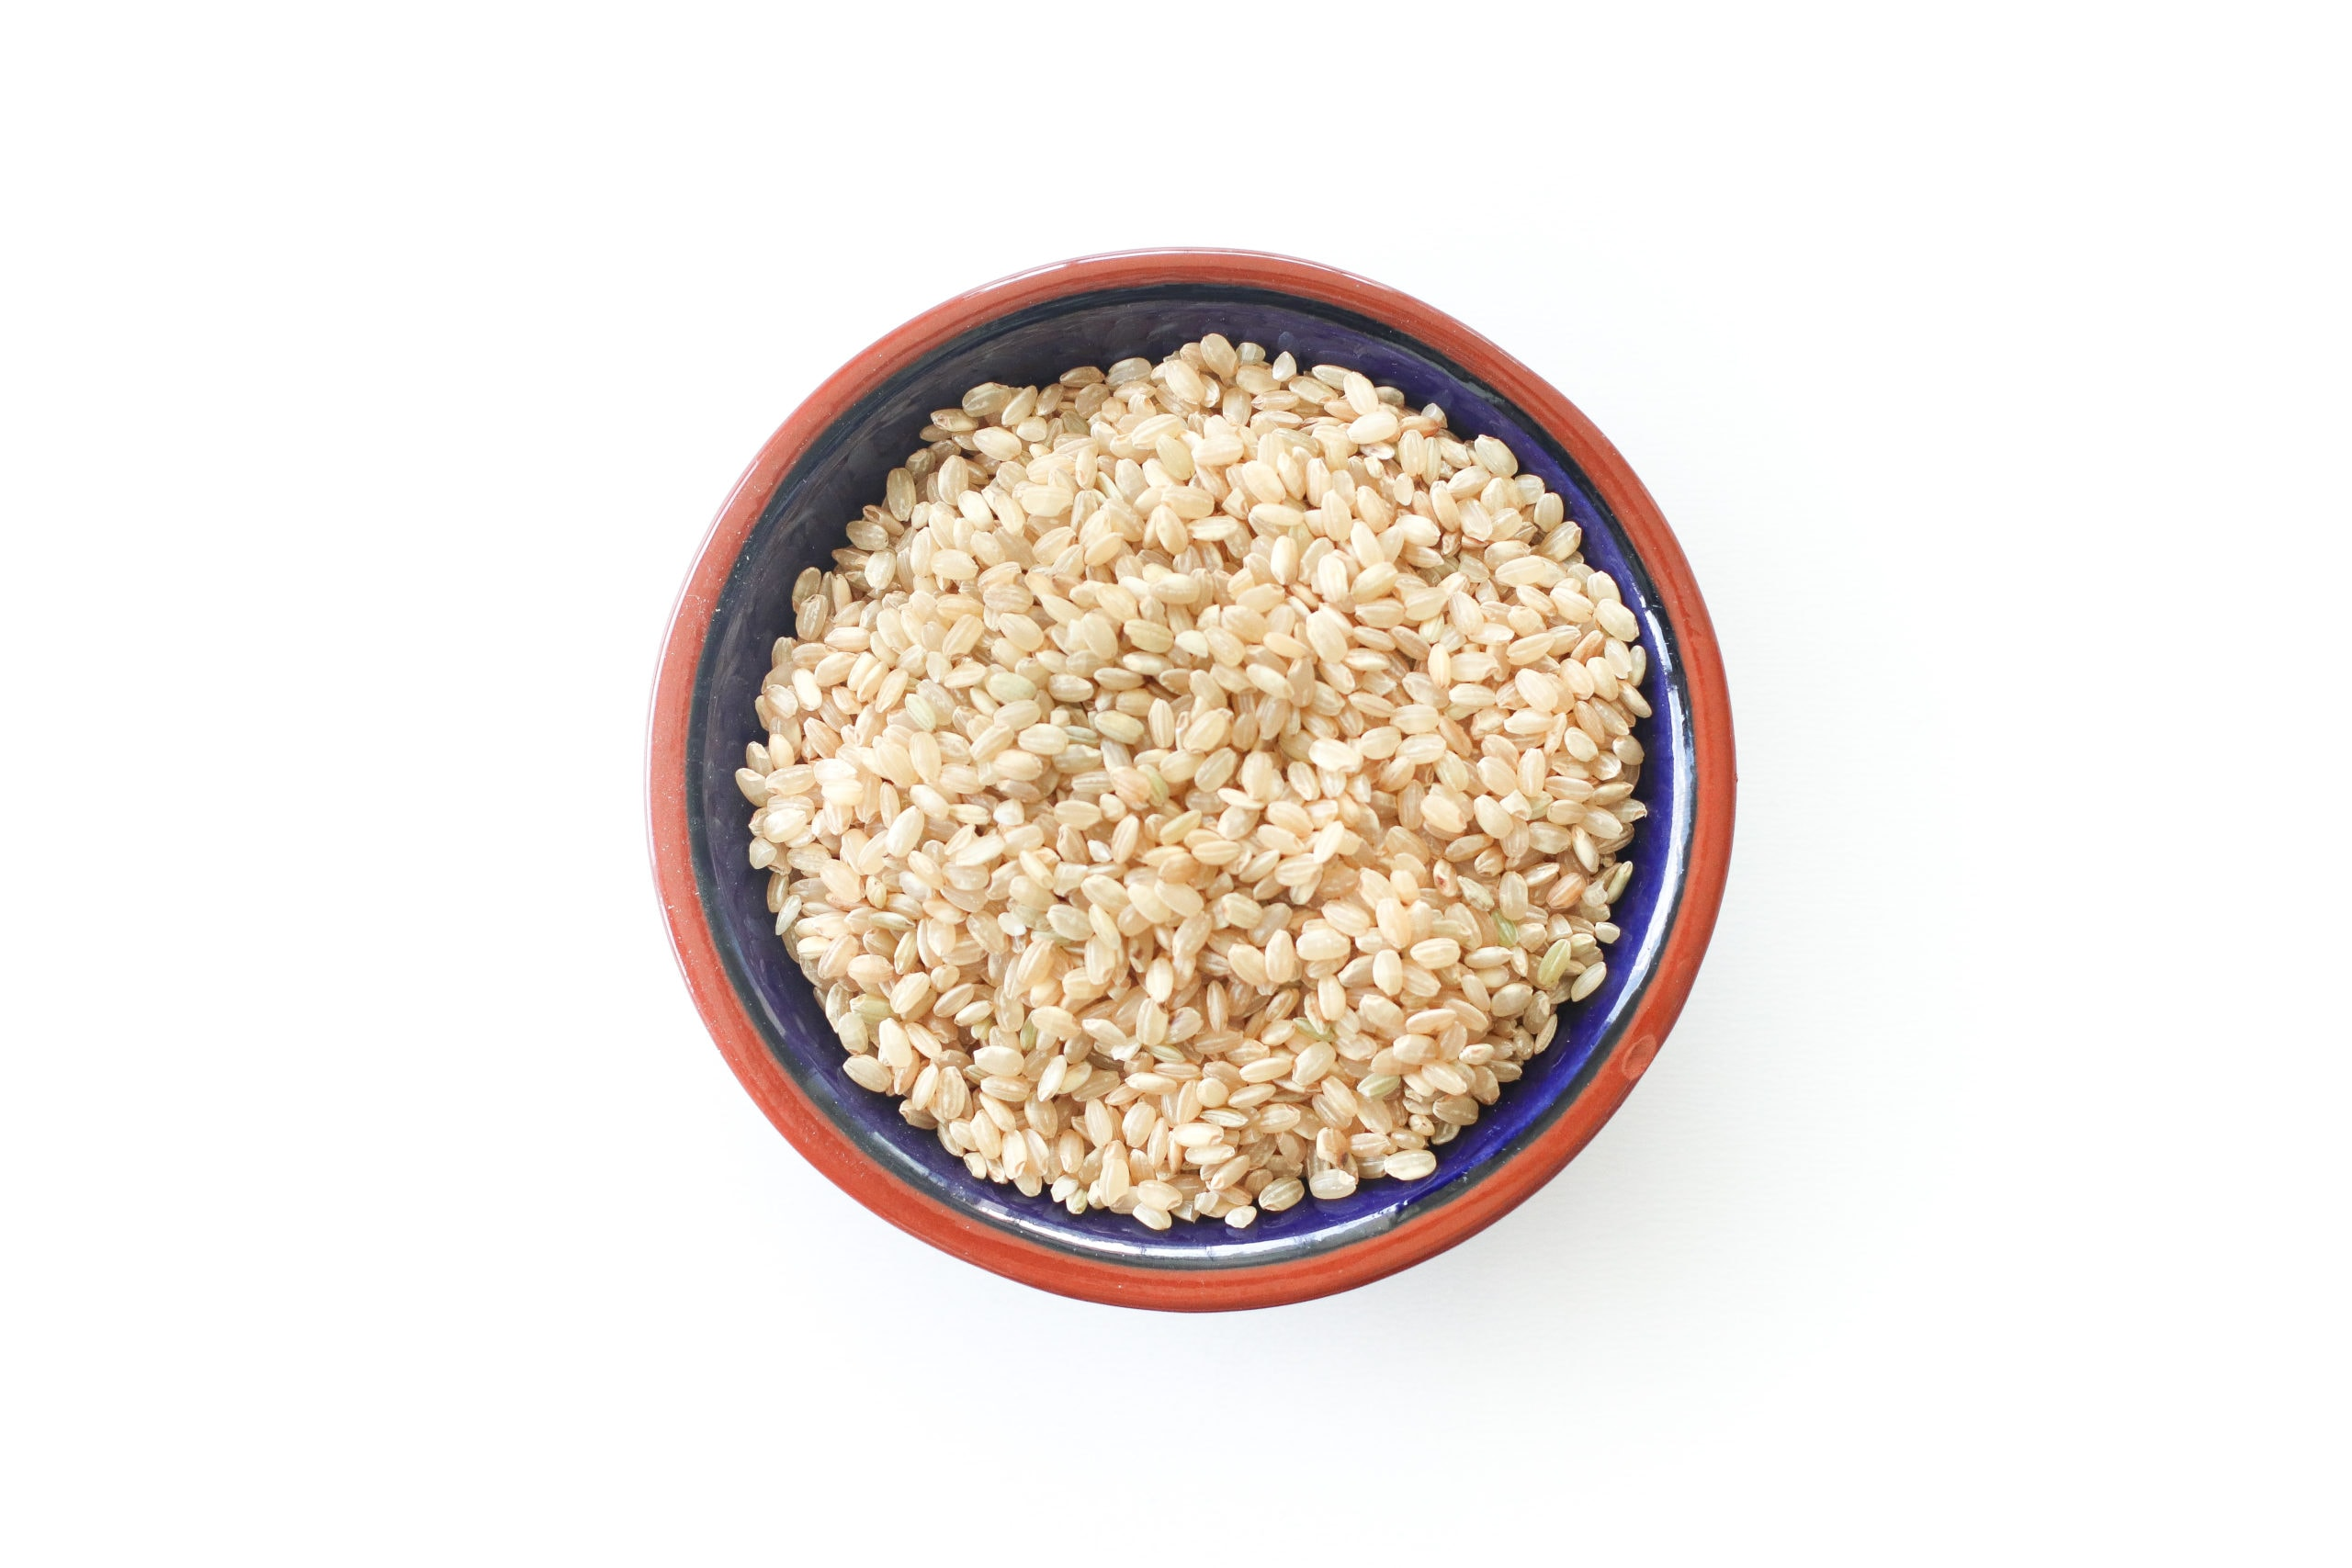 Rice in a blue bowl with a brown trim.